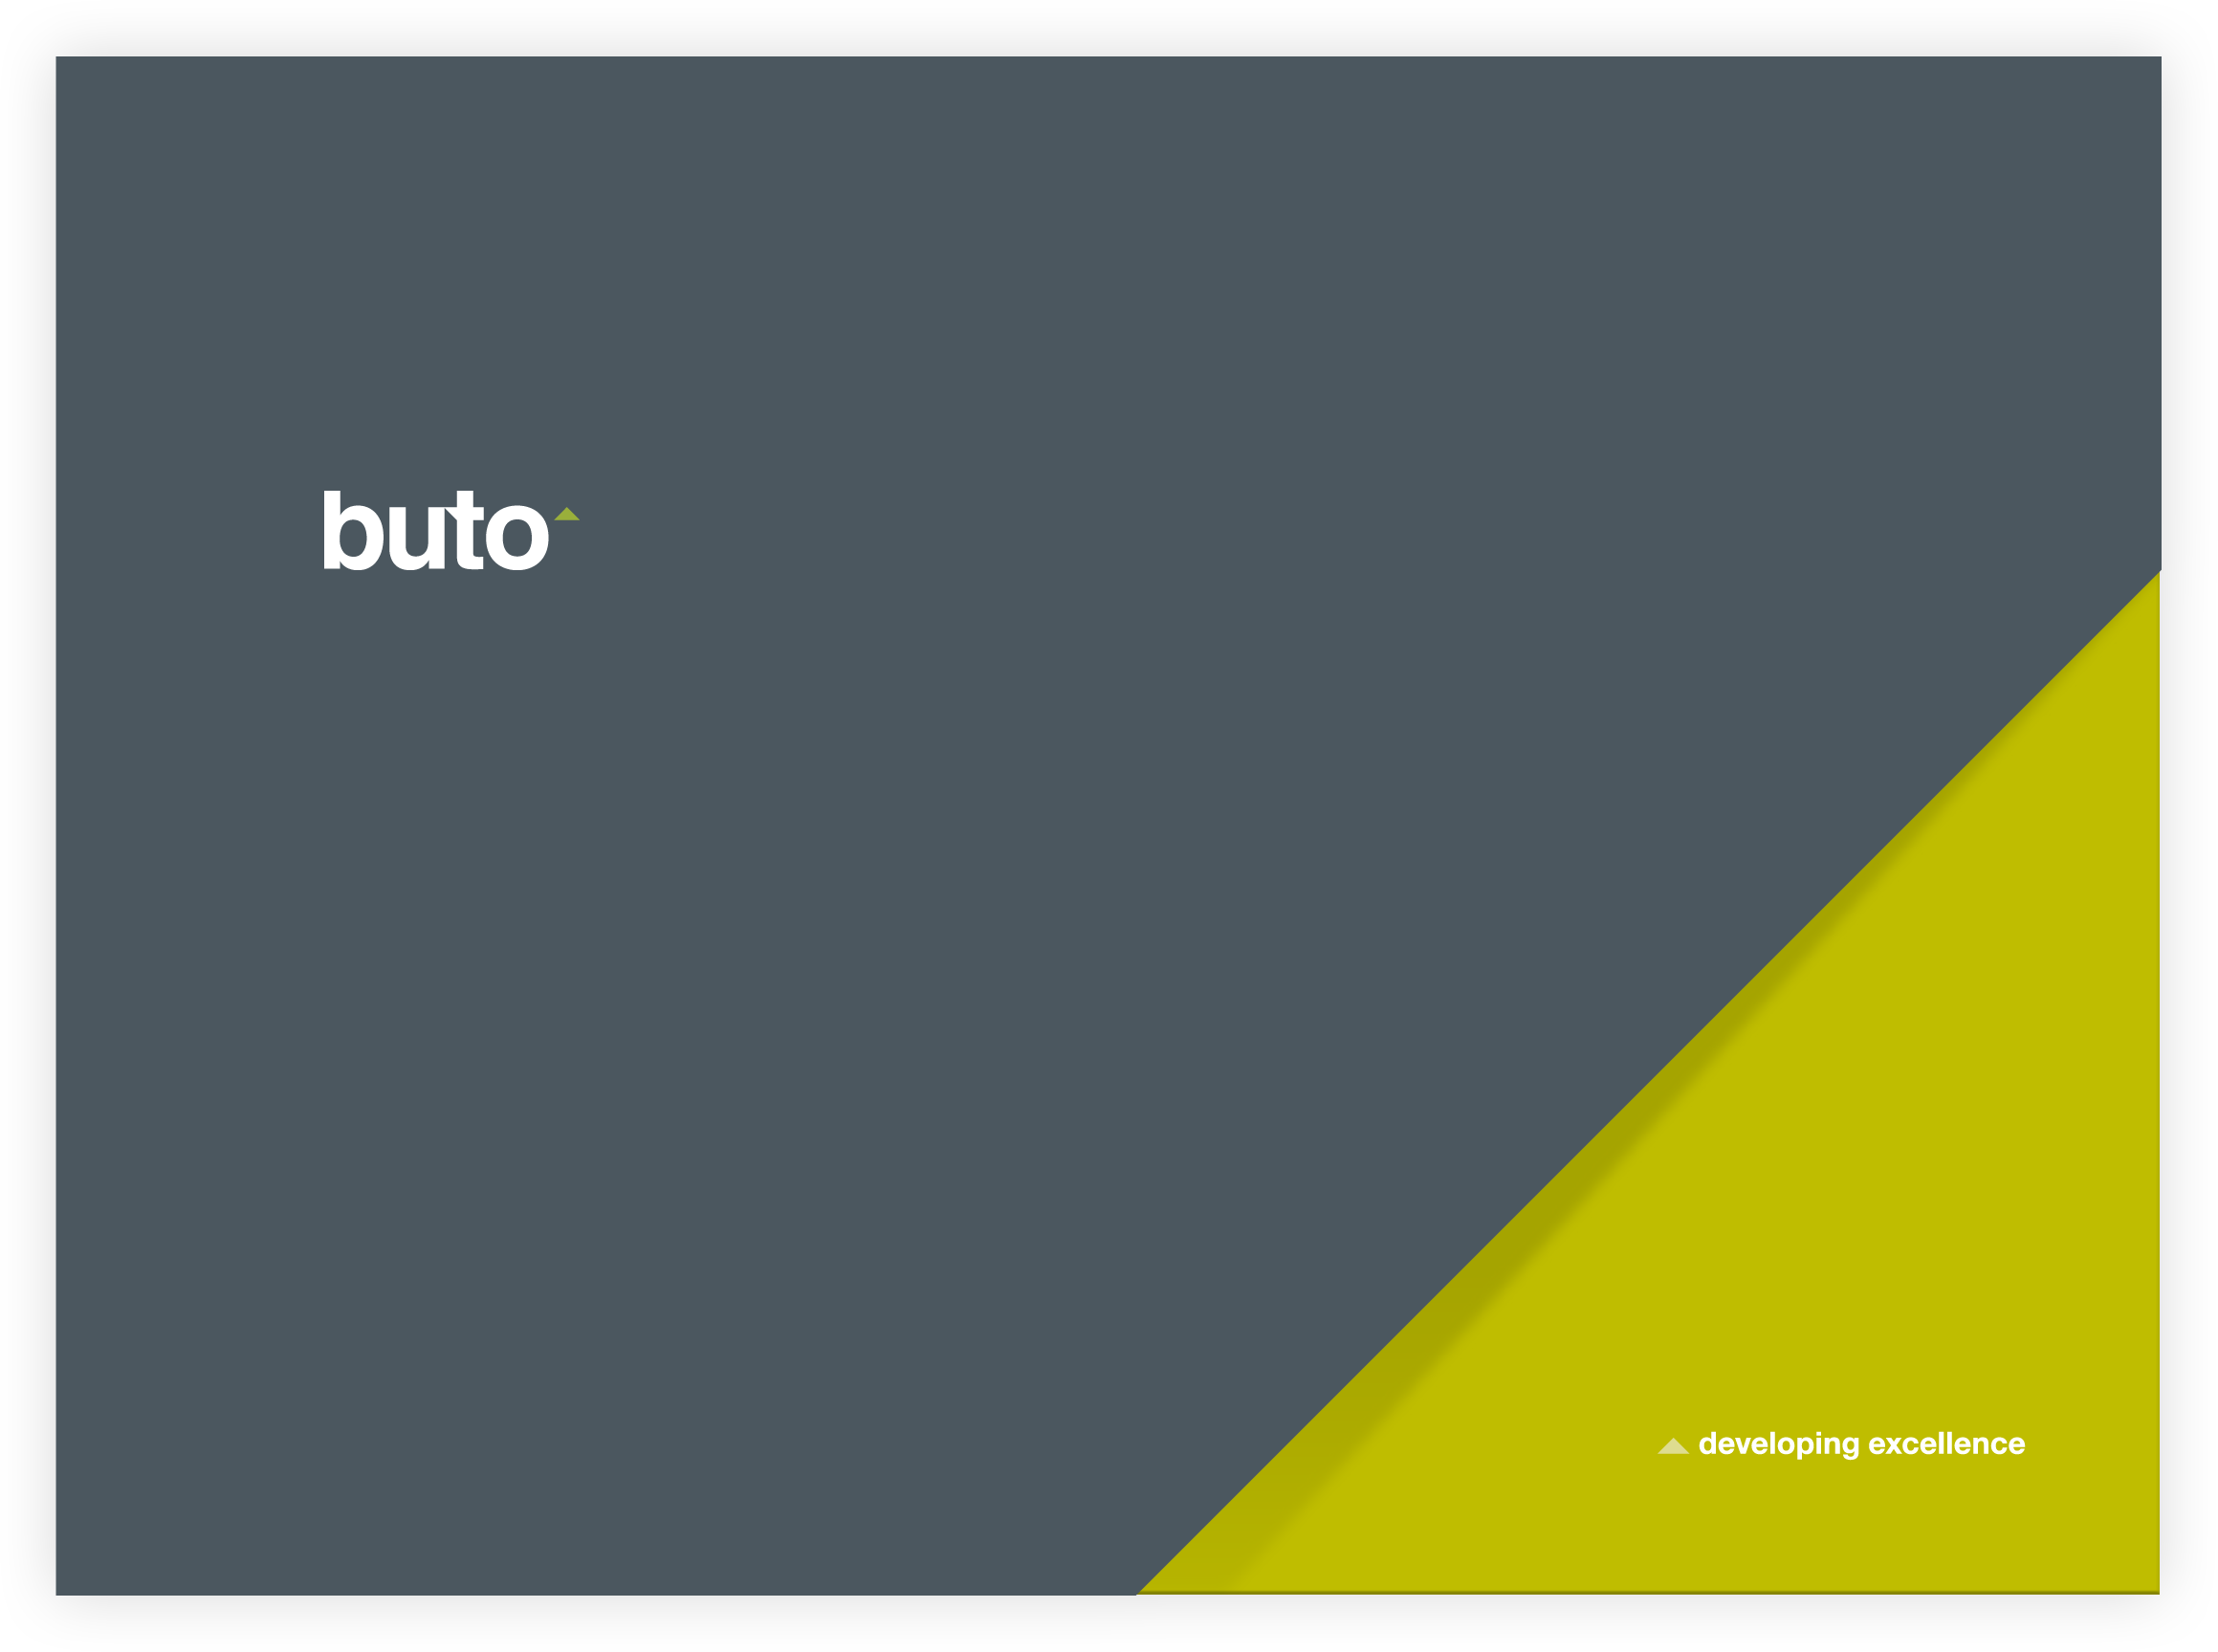 Buto Stationery Folder Design